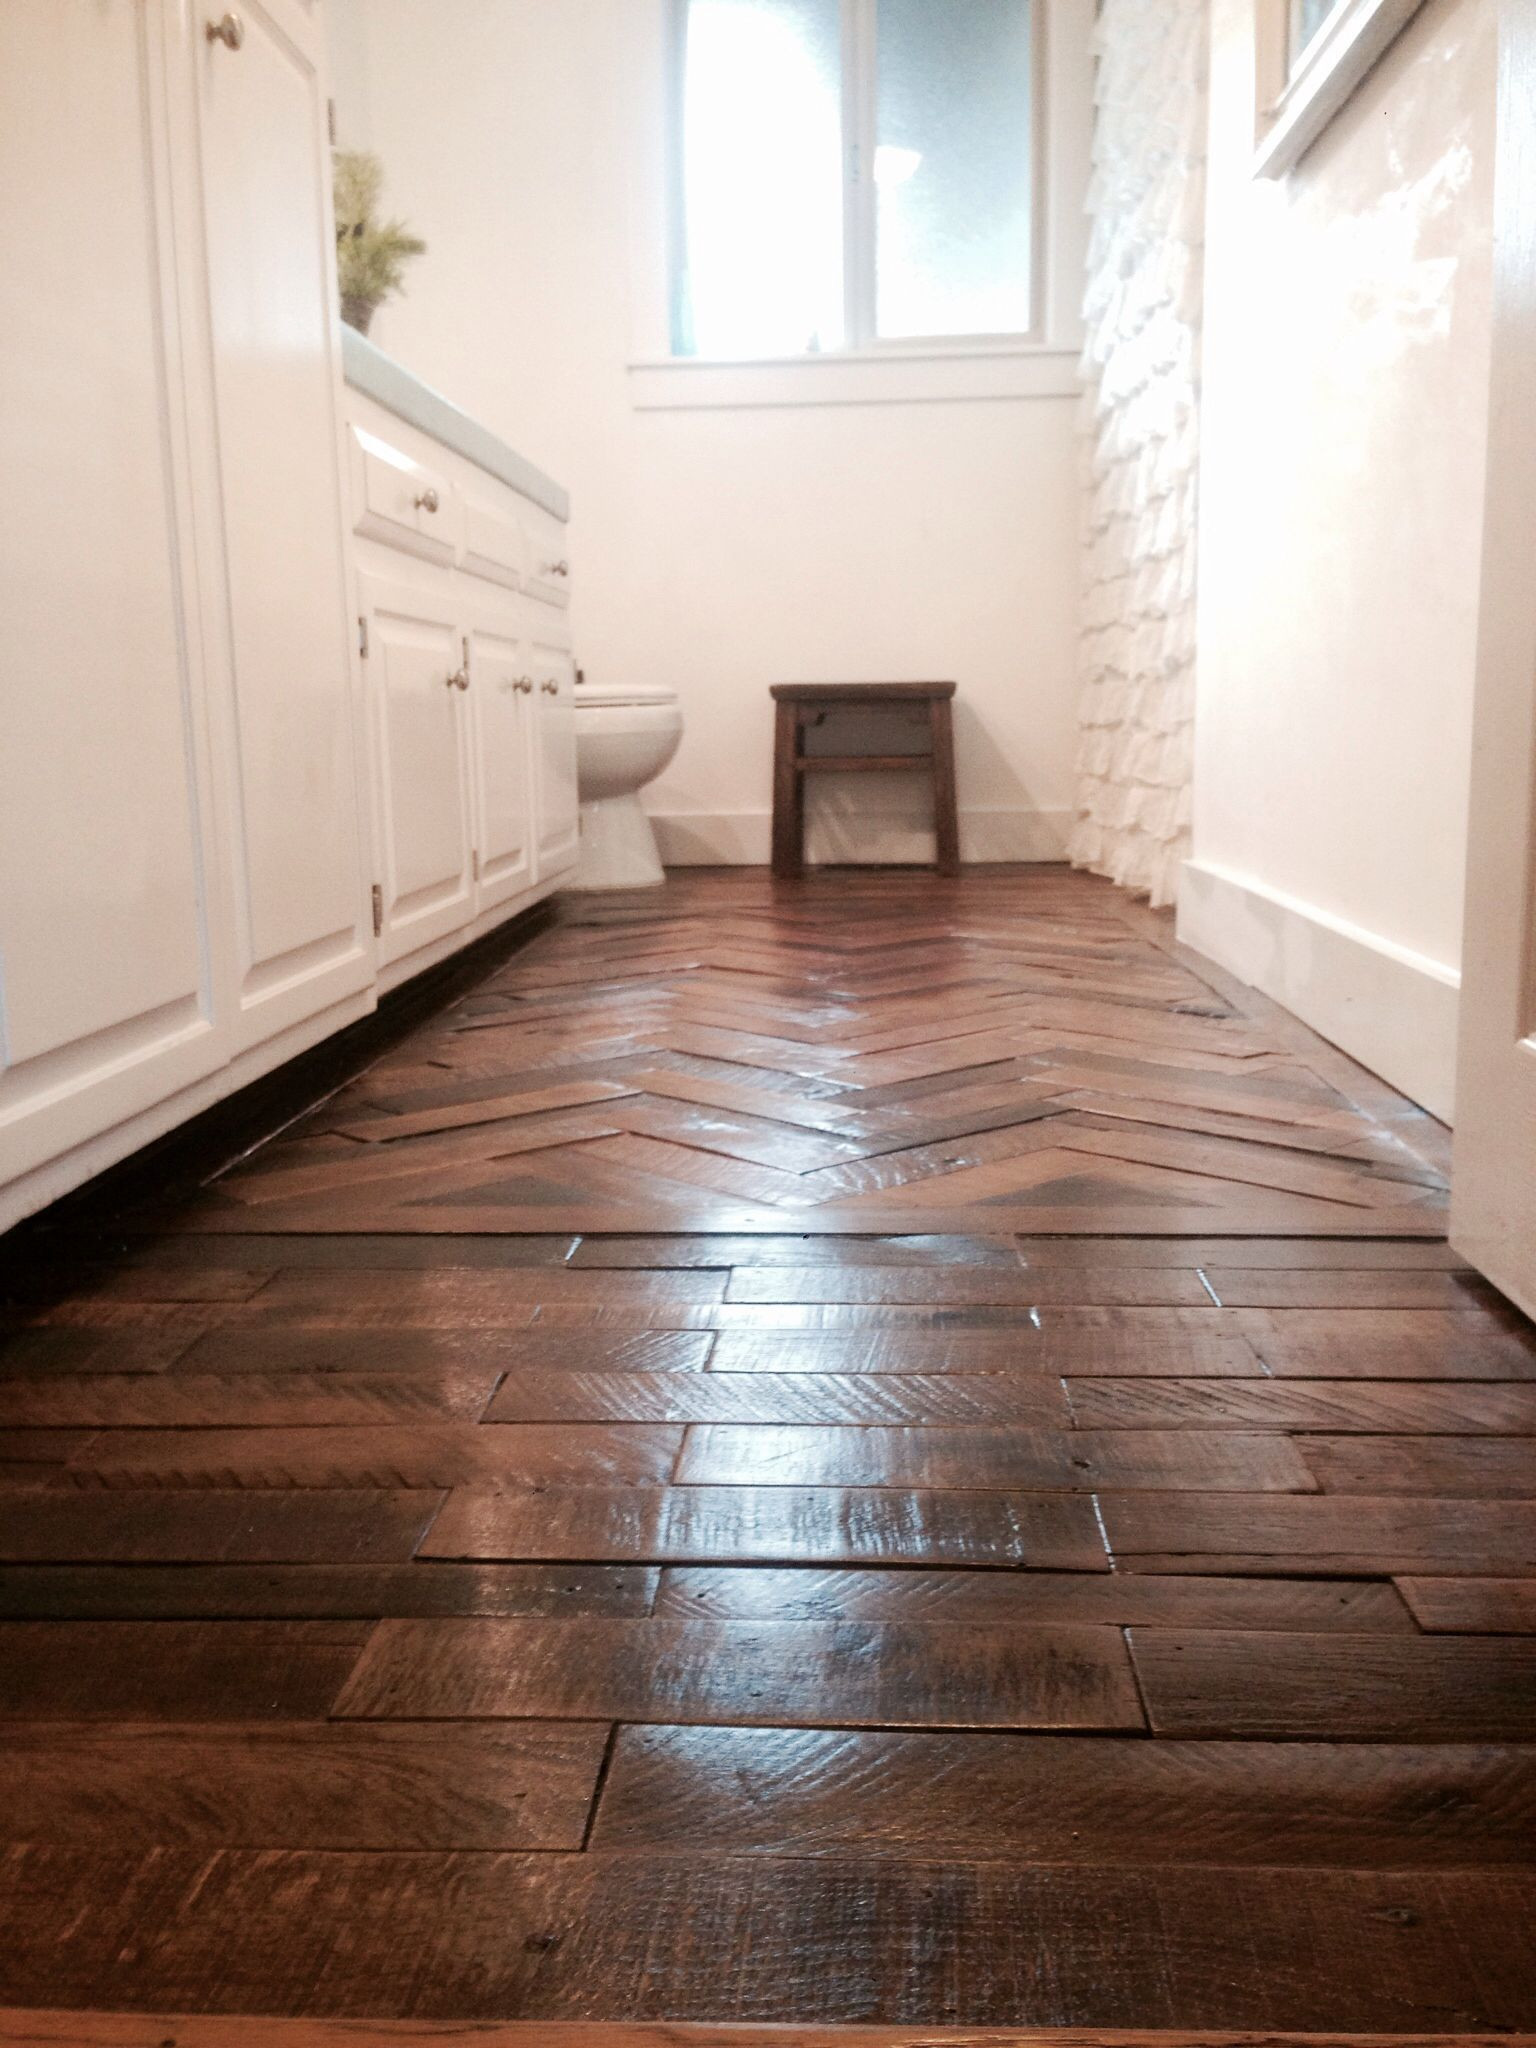 Hardwood Floor Refinishing Charlotte Nc Of Wood Floor Made From Reclaimed Shipping Pallets Commissioned Work within Wood Floor Made From Reclaimed Shipping Pallets